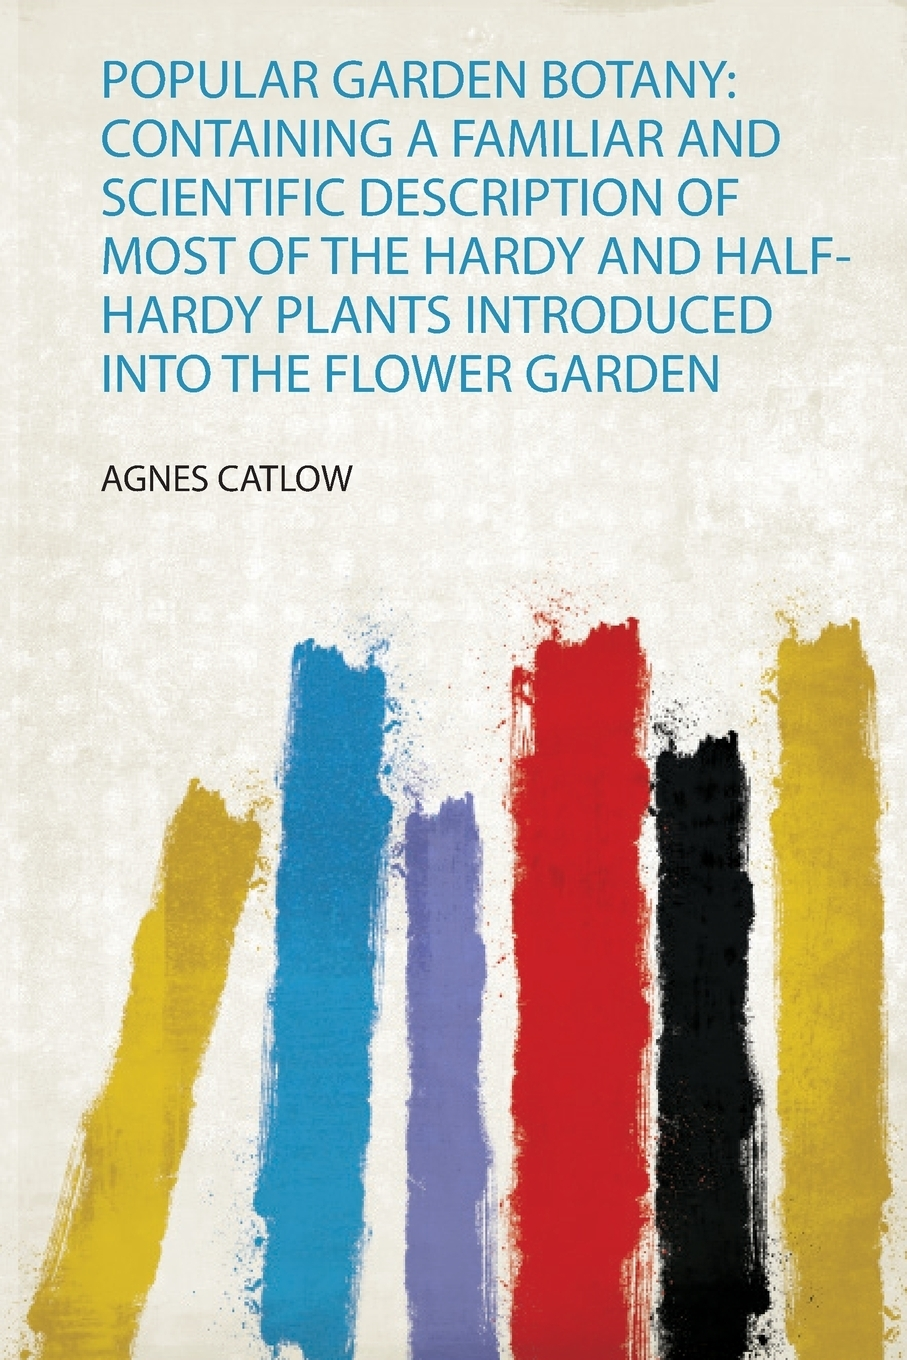 Popular Garden Botany. Containing a Familiar and Scientific Description of Most of the Hardy and Half-Hardy Plants Introduced Into the Flower Garden